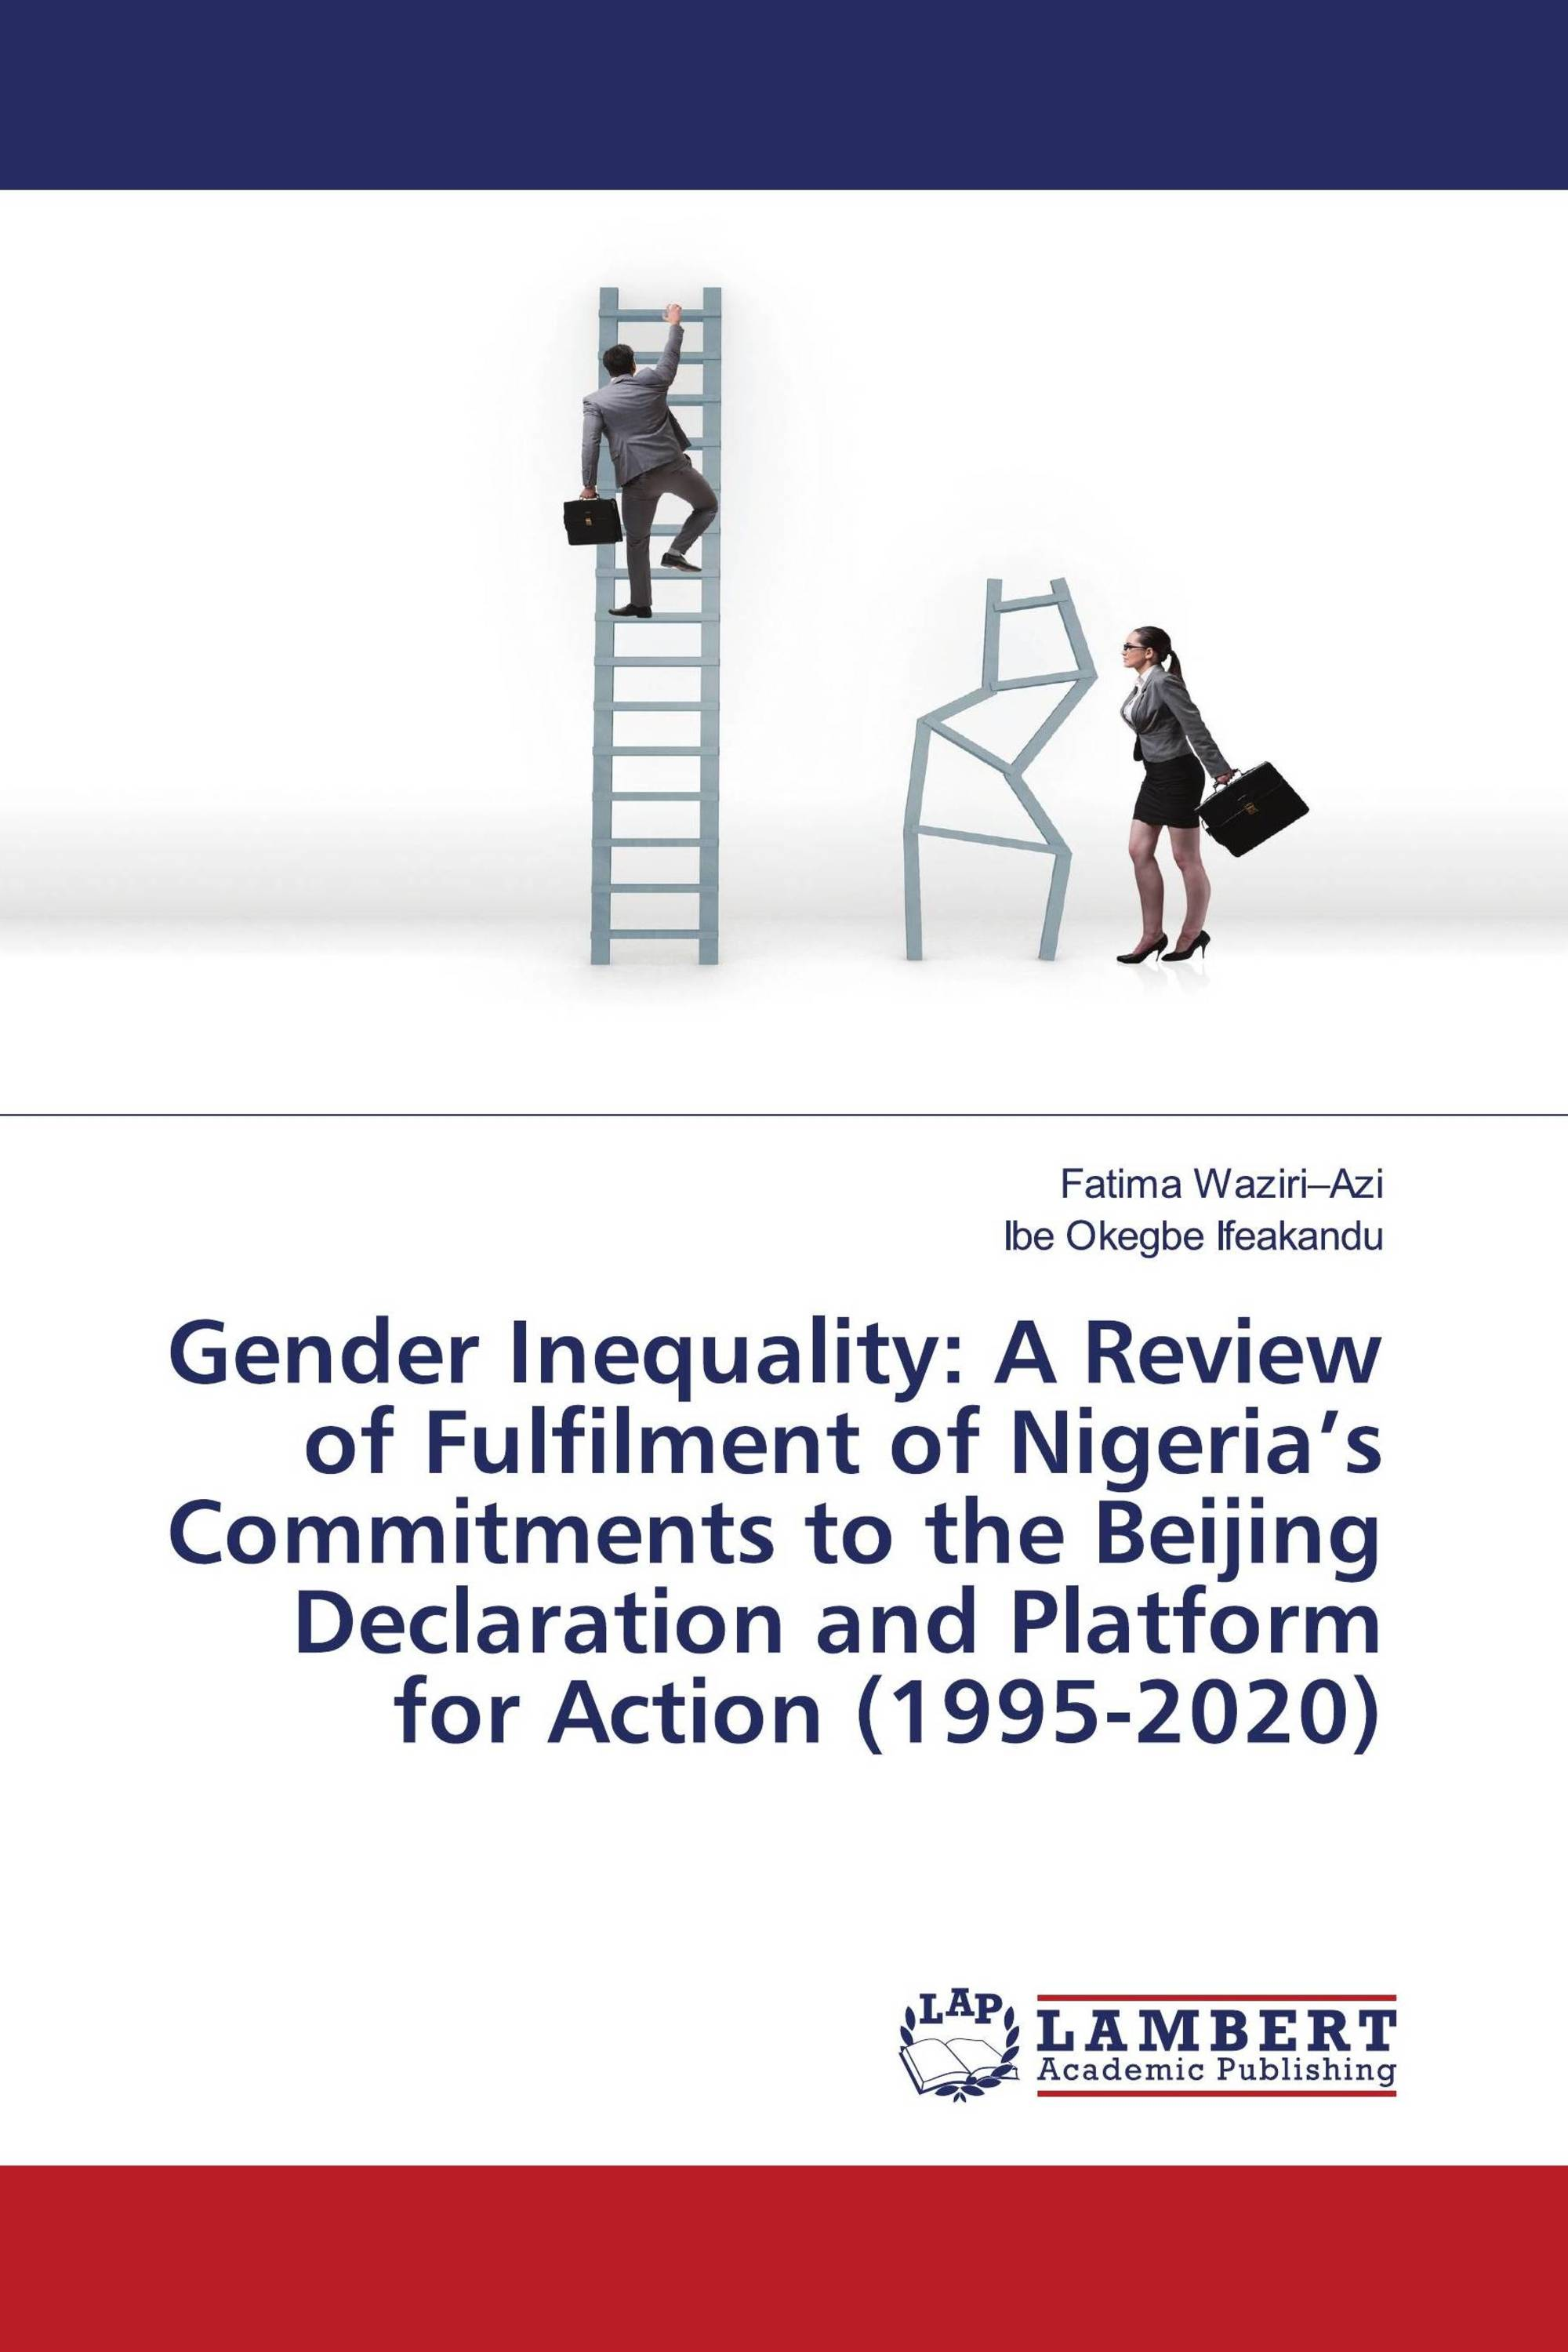 Gender Inequality: A Review of Fulfilment of Nigeria's Commitments to the Beijing Declaration and Platform for Action (1995-2020)